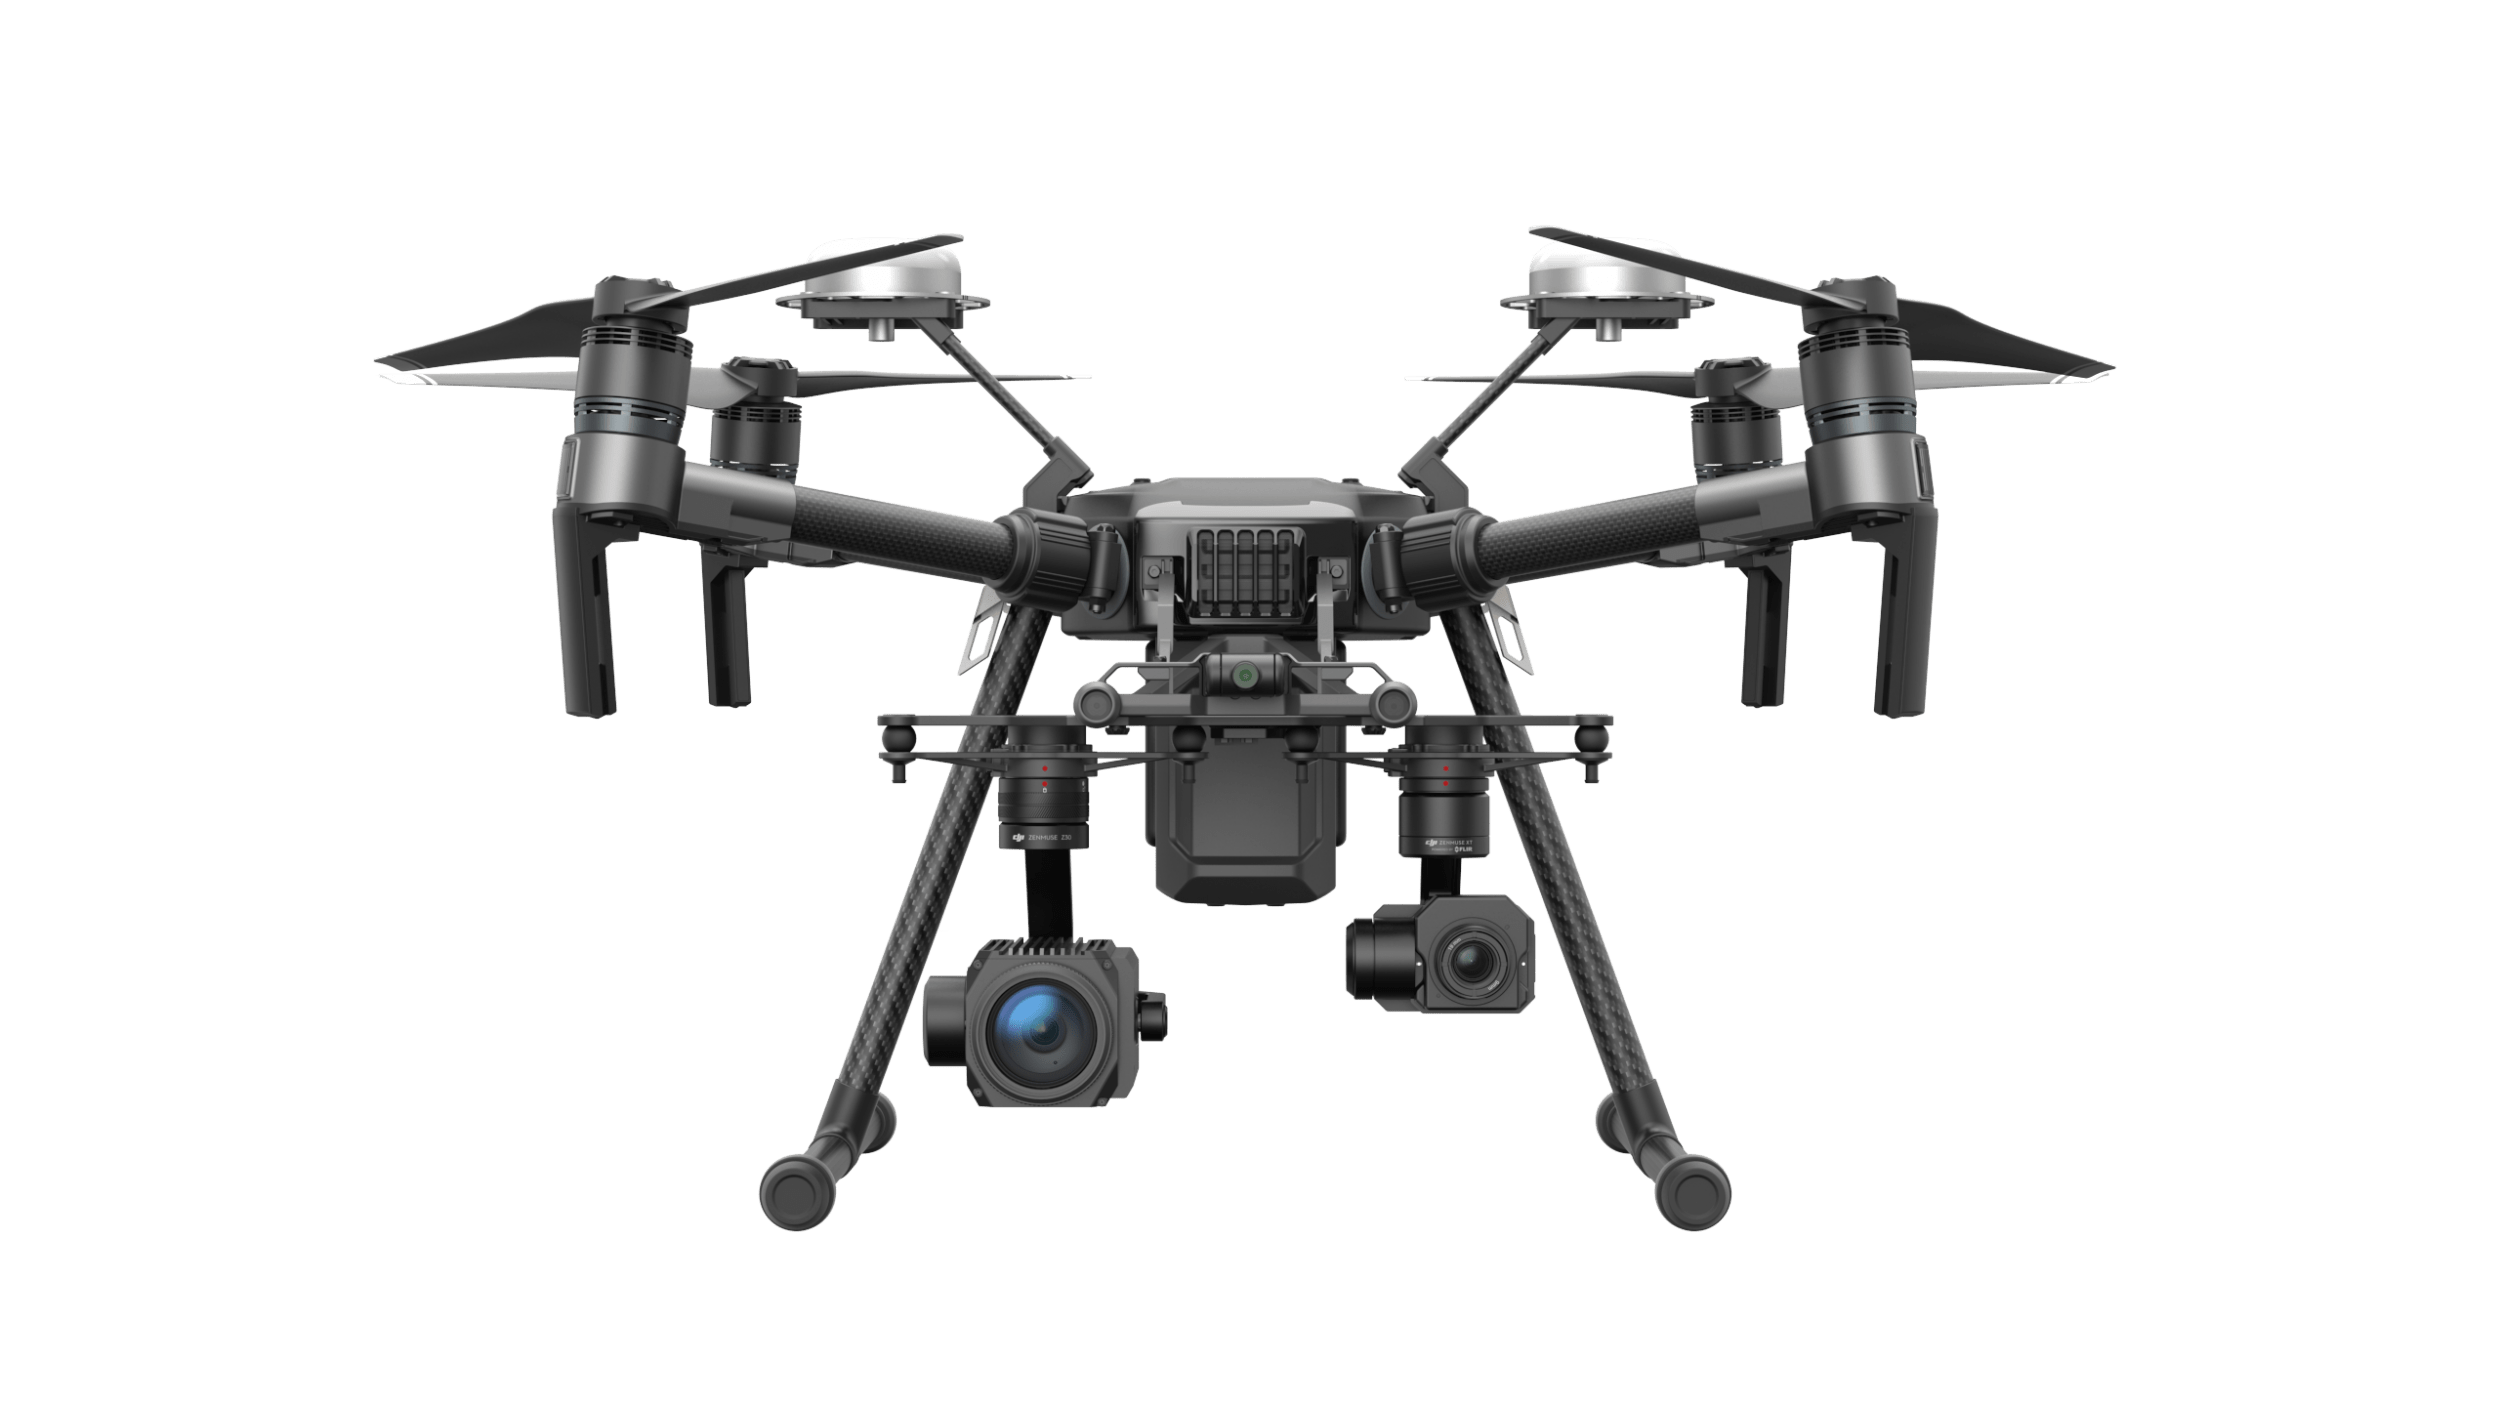 Market Leader Dji Unveils New Quadcopter For Industrial Uses